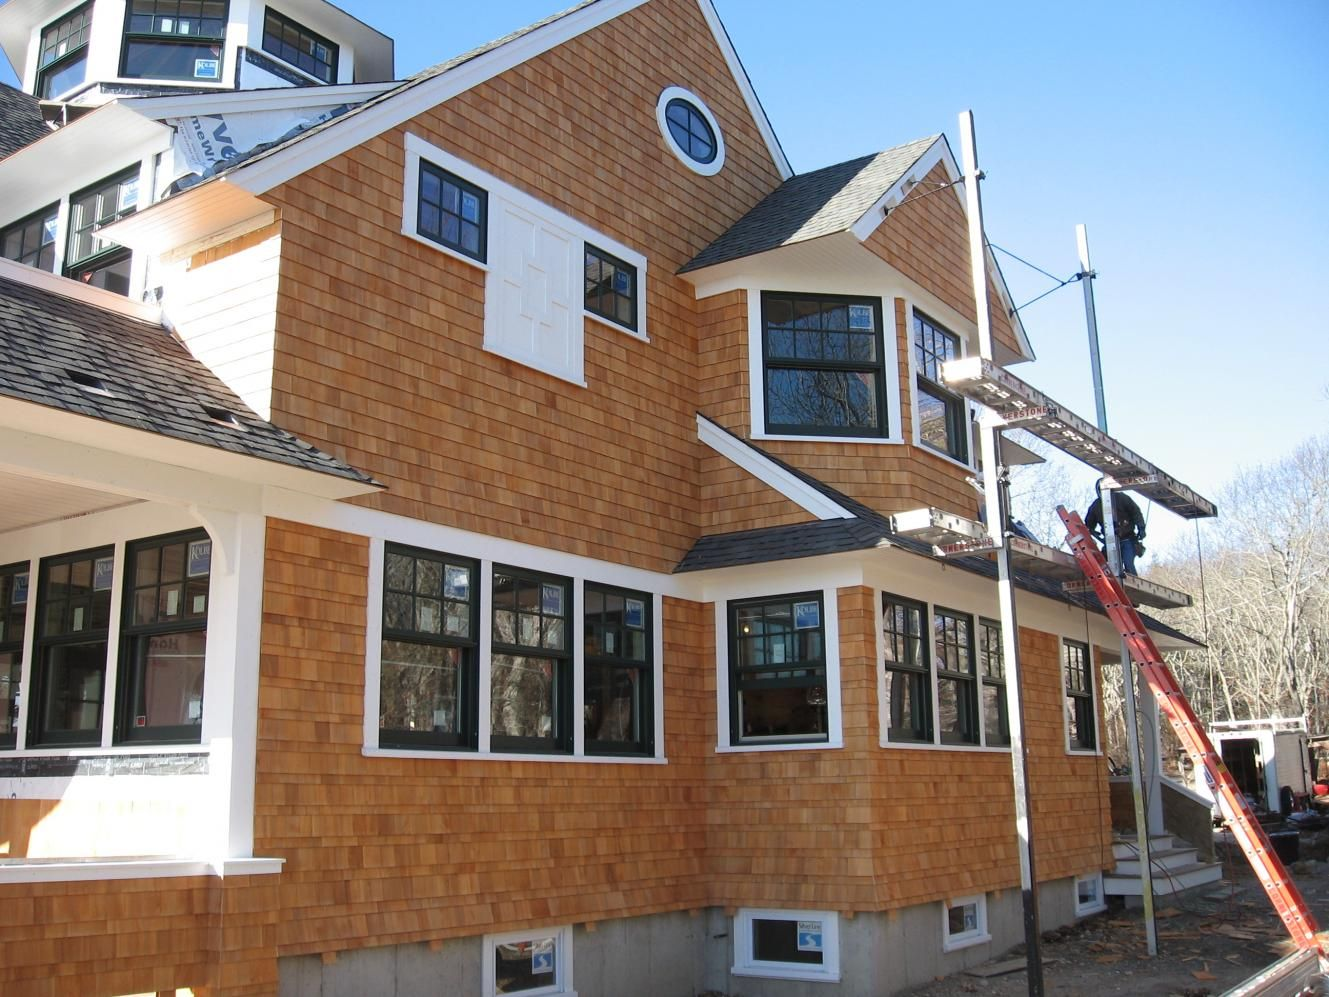 Best Lines In Siding On Lower Portion Images Of Cedar Shake 400 x 300